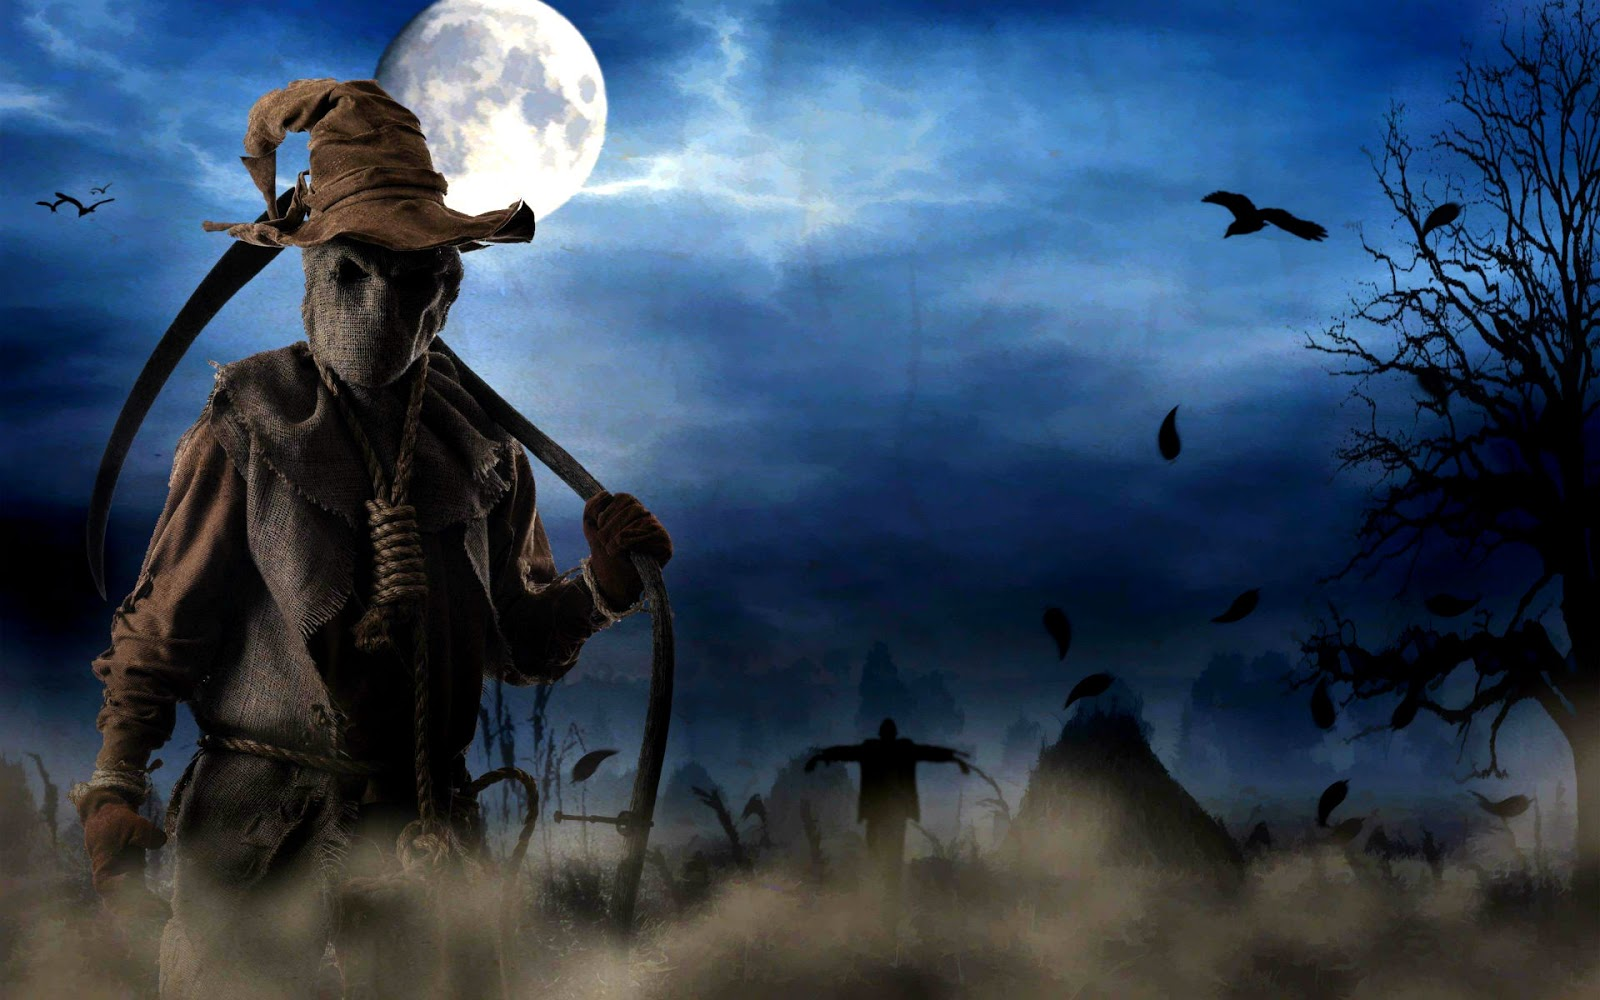 Wallpaper world scary halloween wallpapers - Scary halloween screensavers animated ...